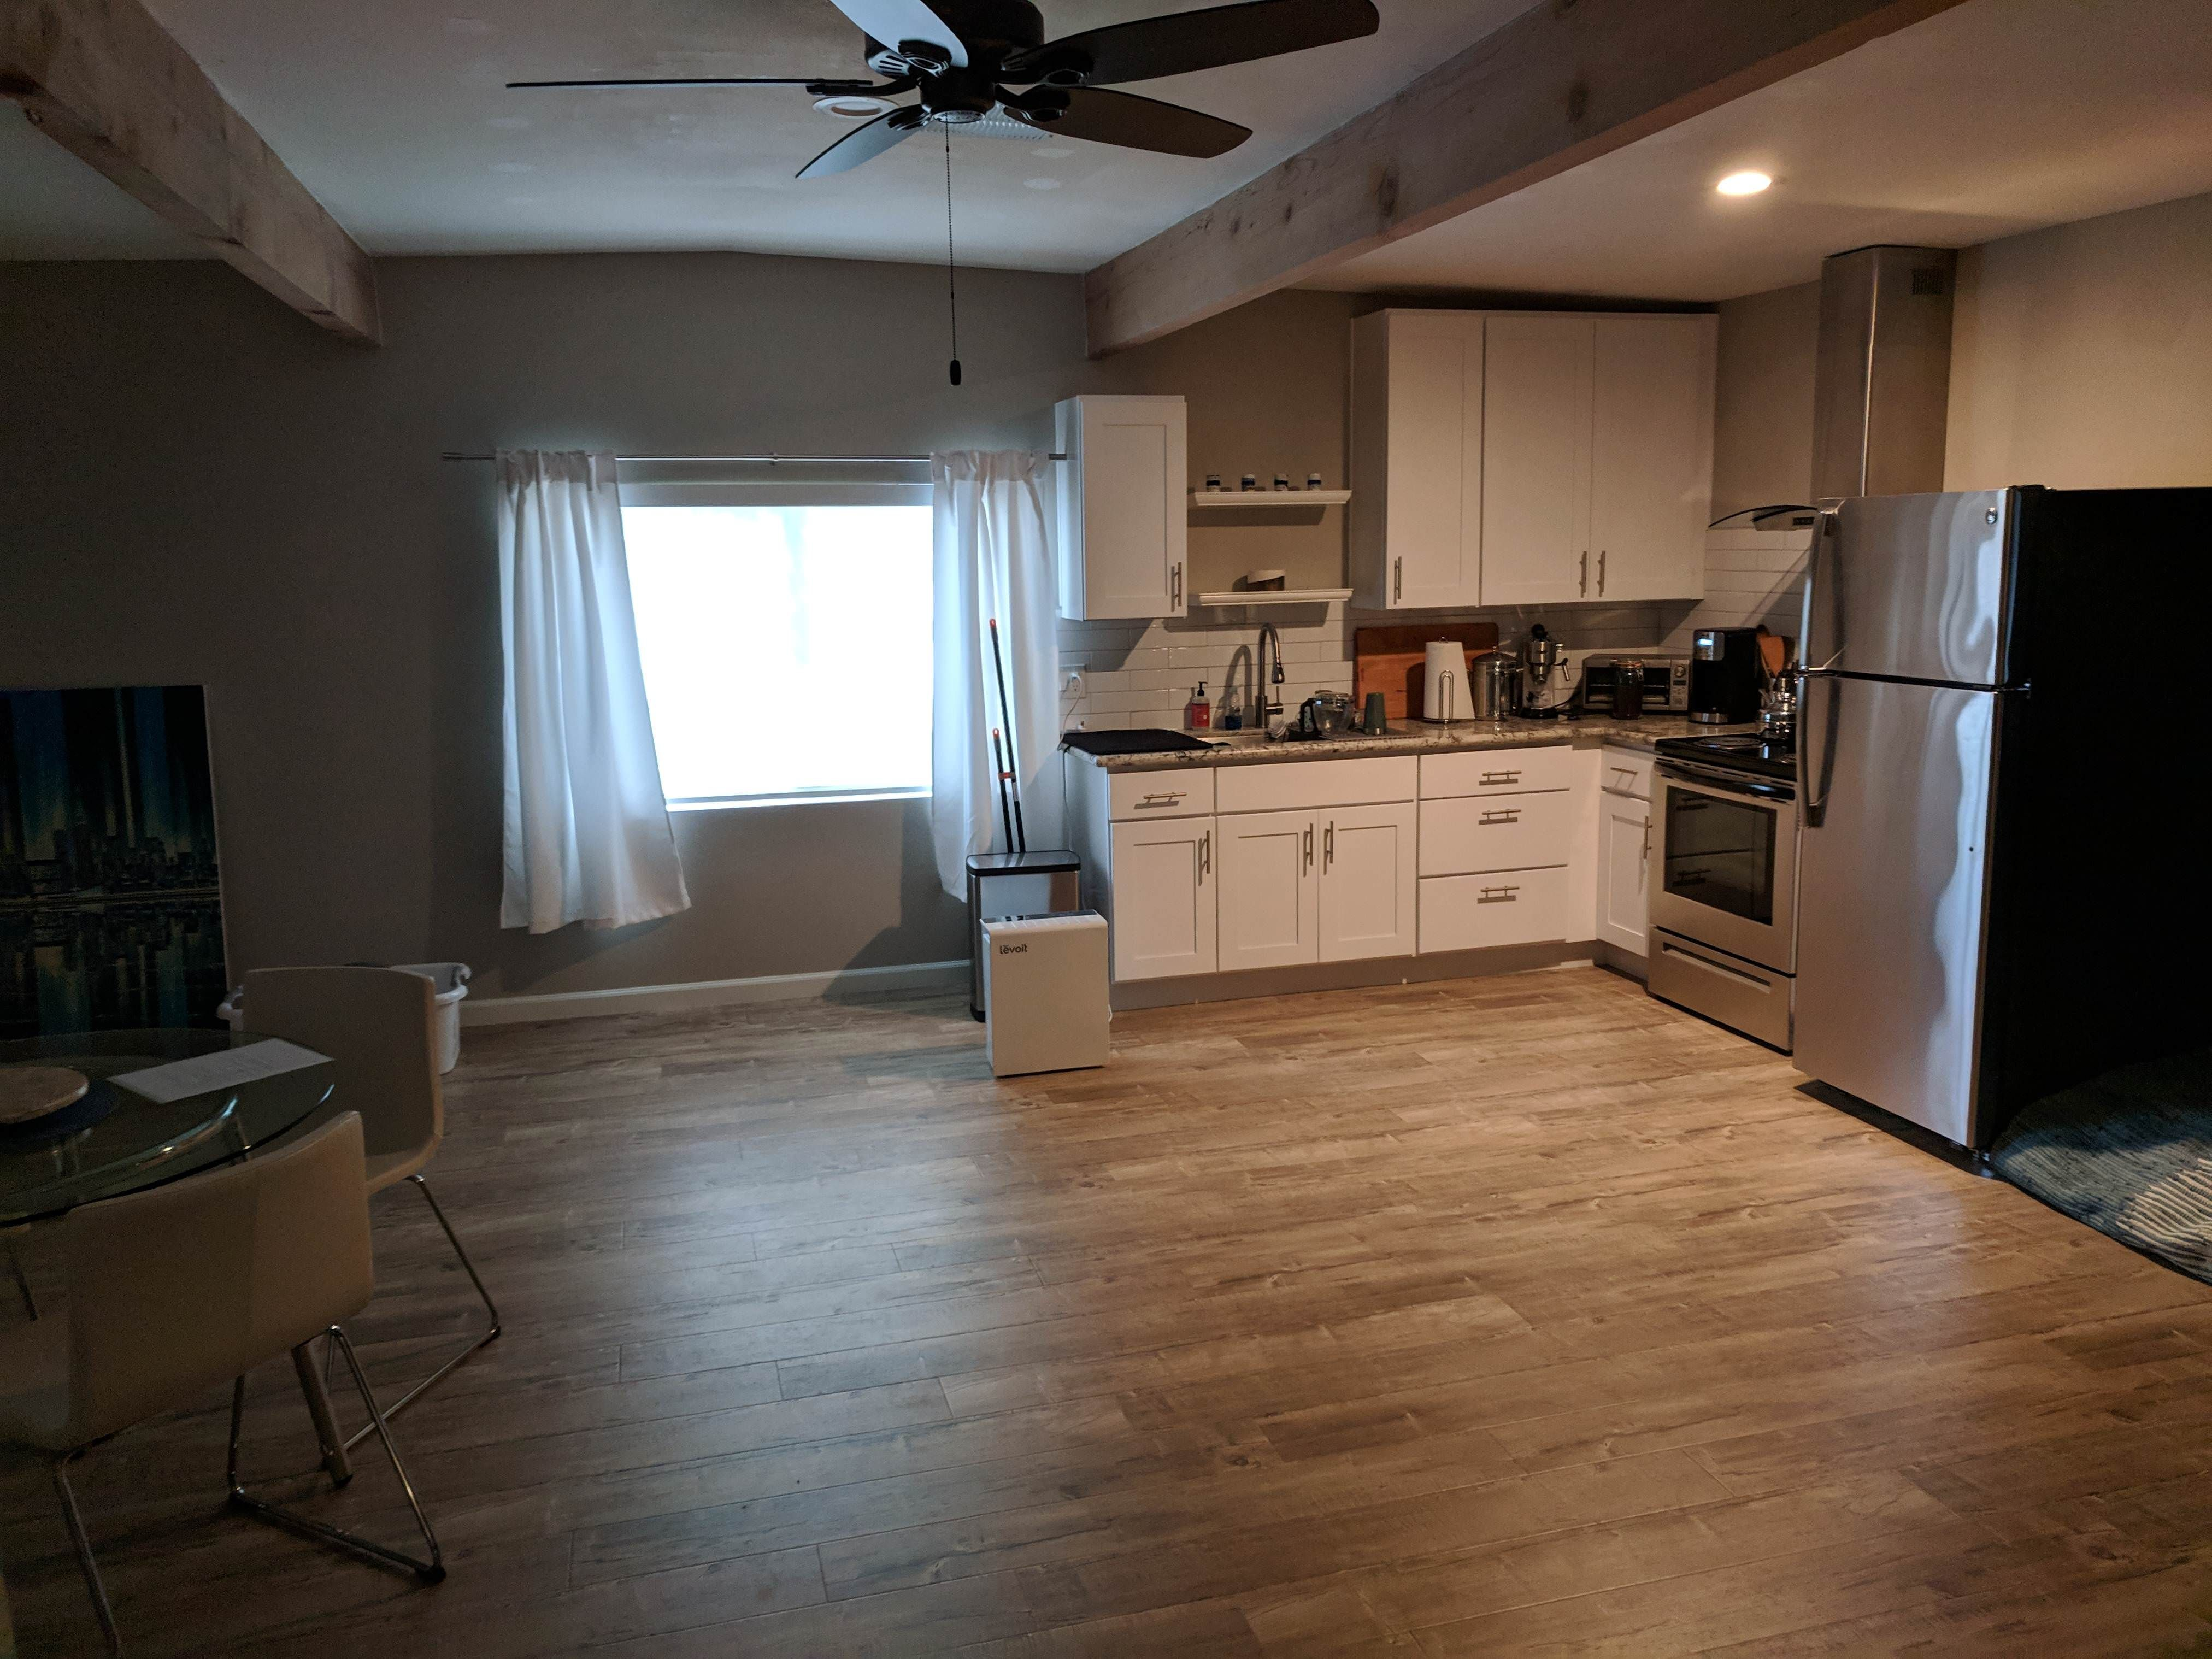 Thoughts on making this empty kitchen a nicer place? https ...